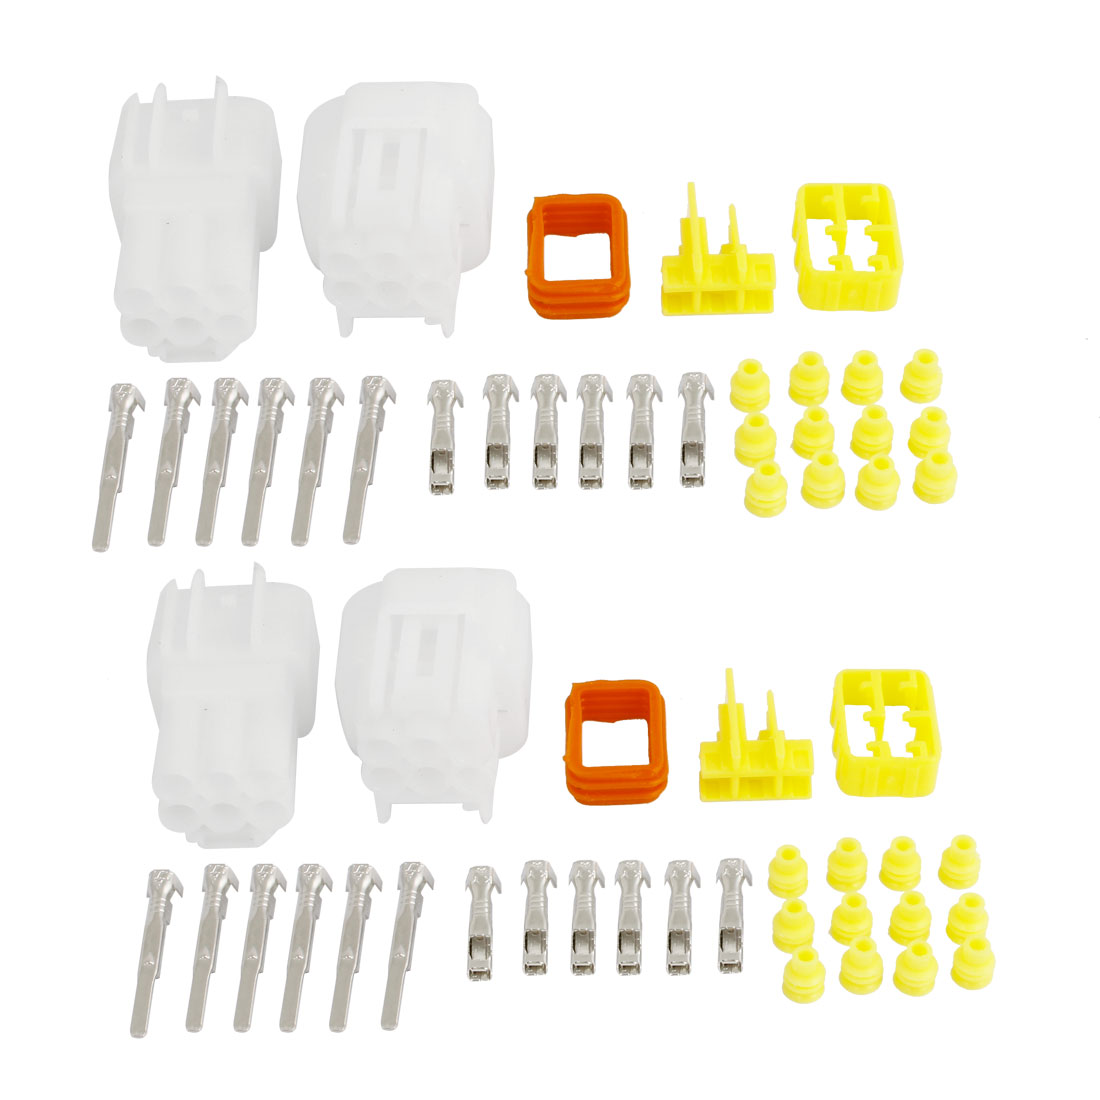 2 Set Sealed Weather Proof Connector Kit 2.3mm Terminal Heat Plugs White for Car Auto